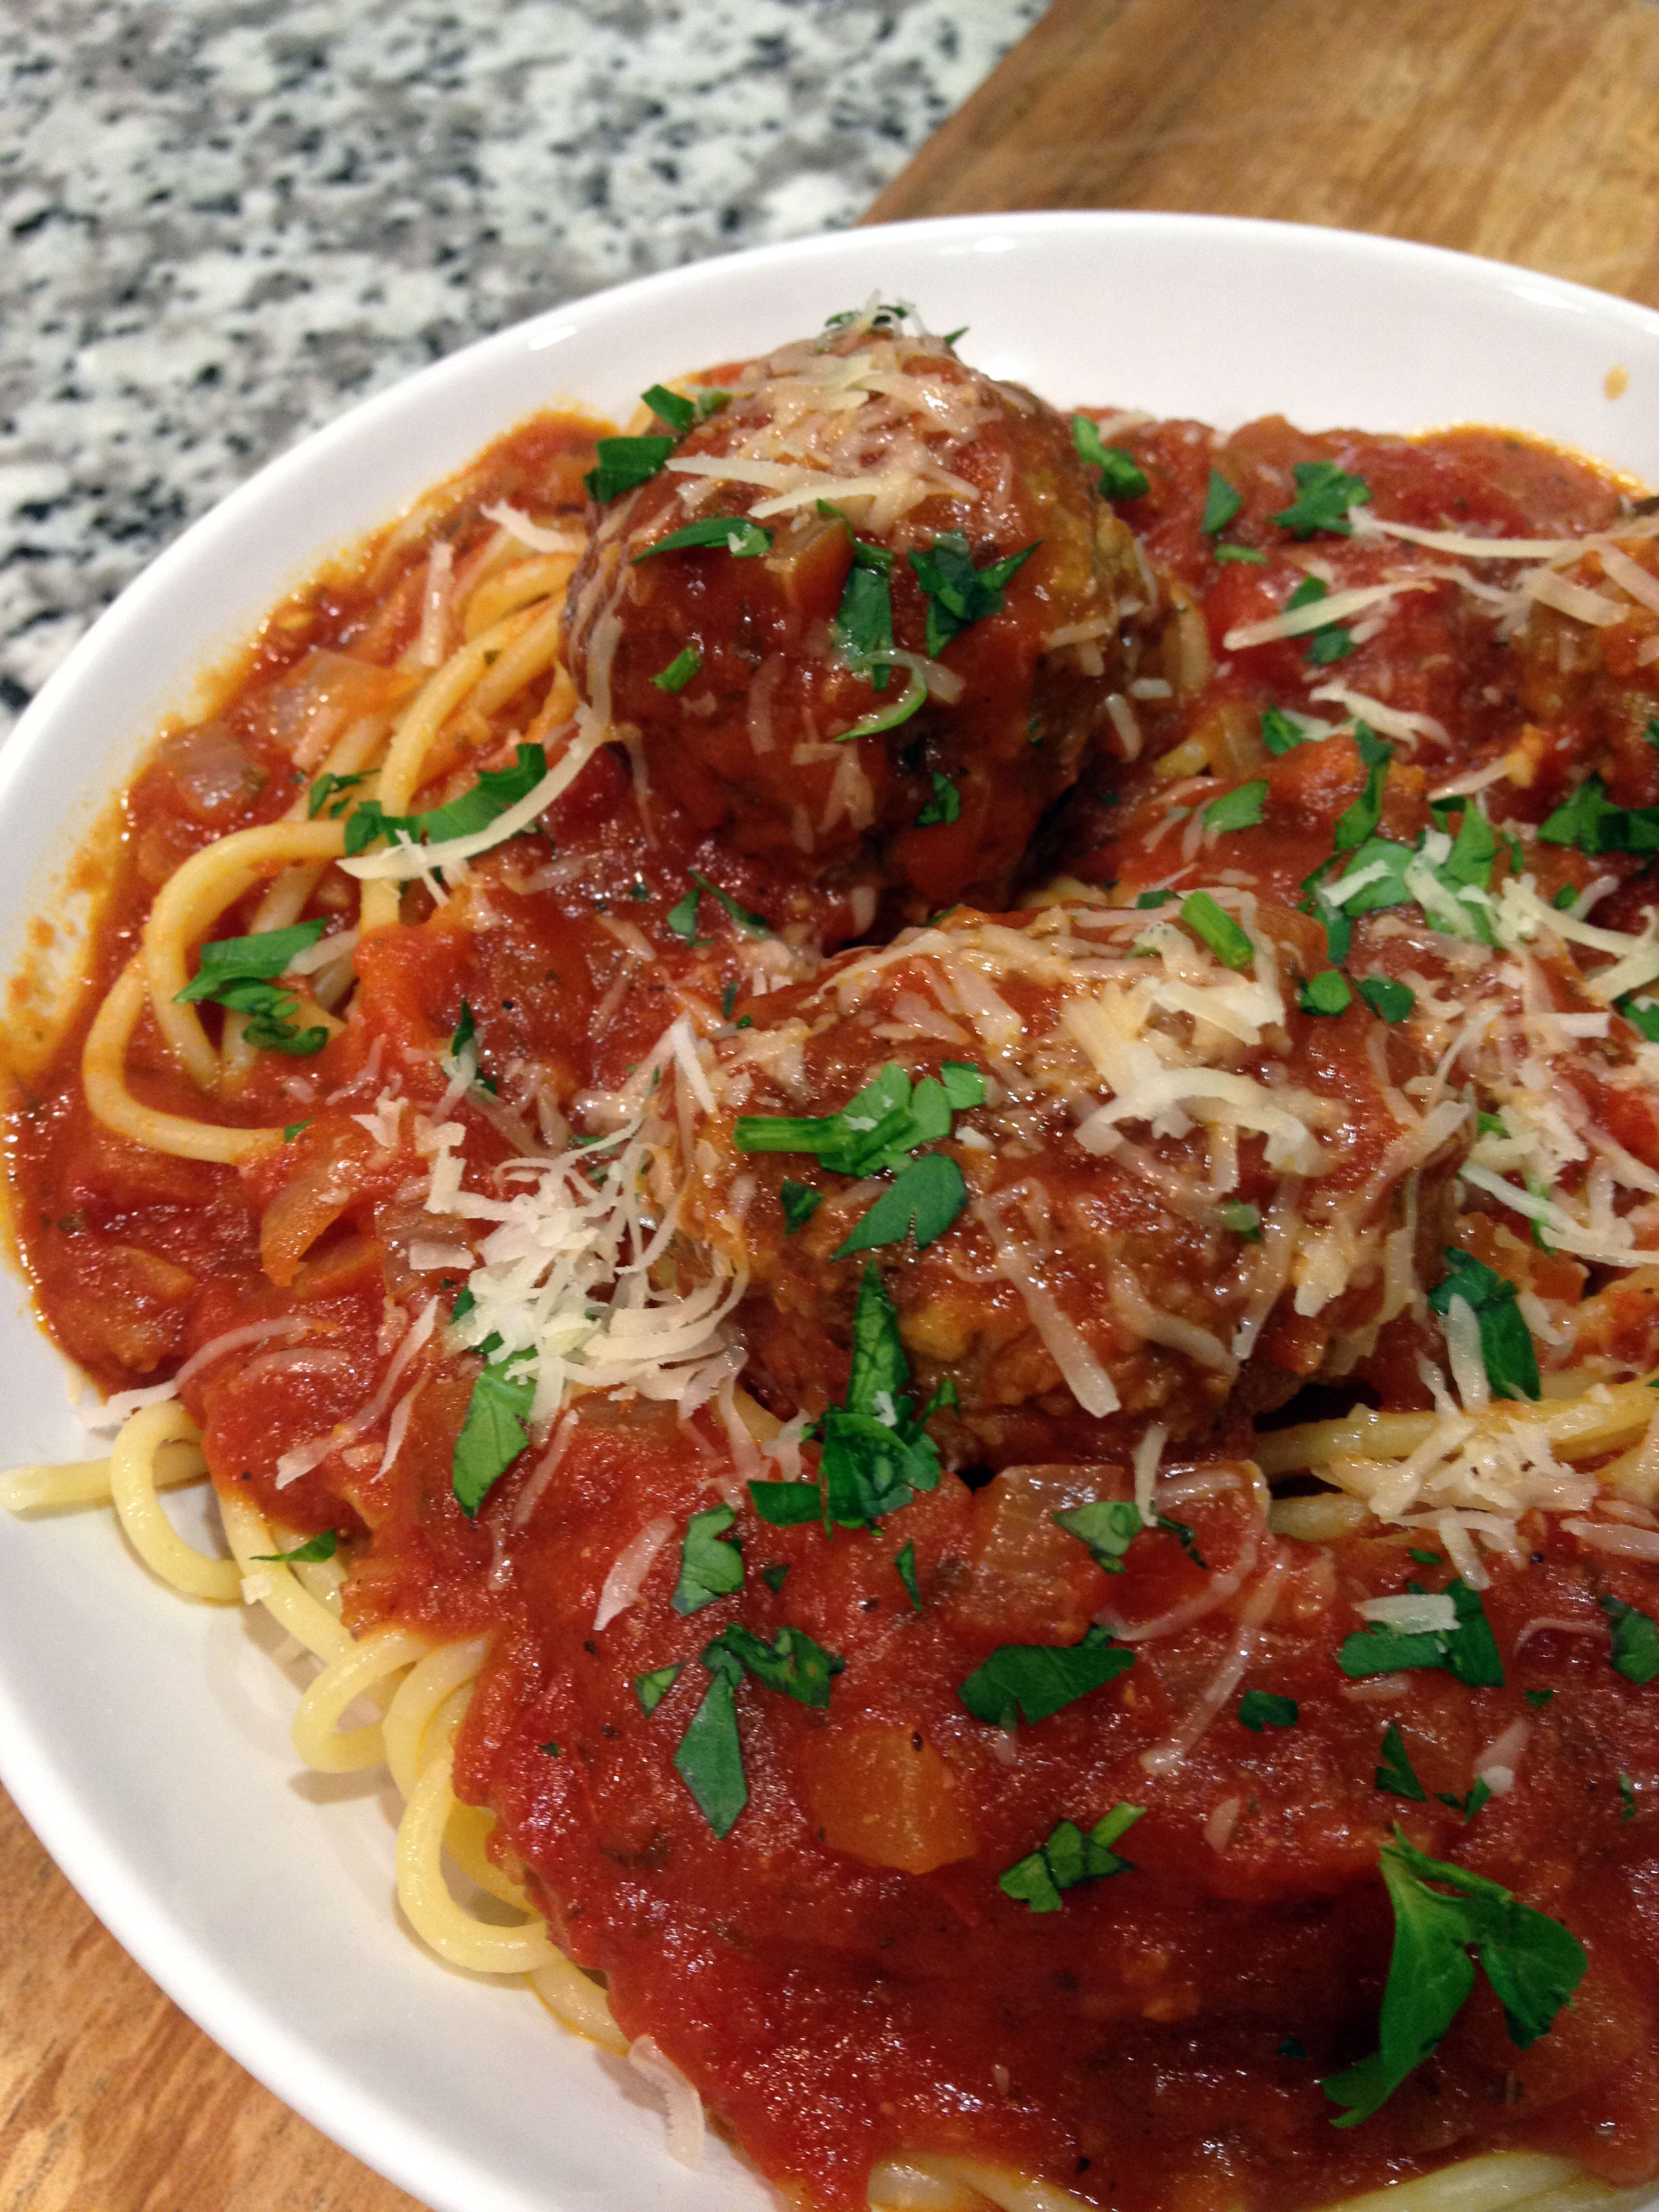 The Go-To Classic: Spaghetti & Meatballs